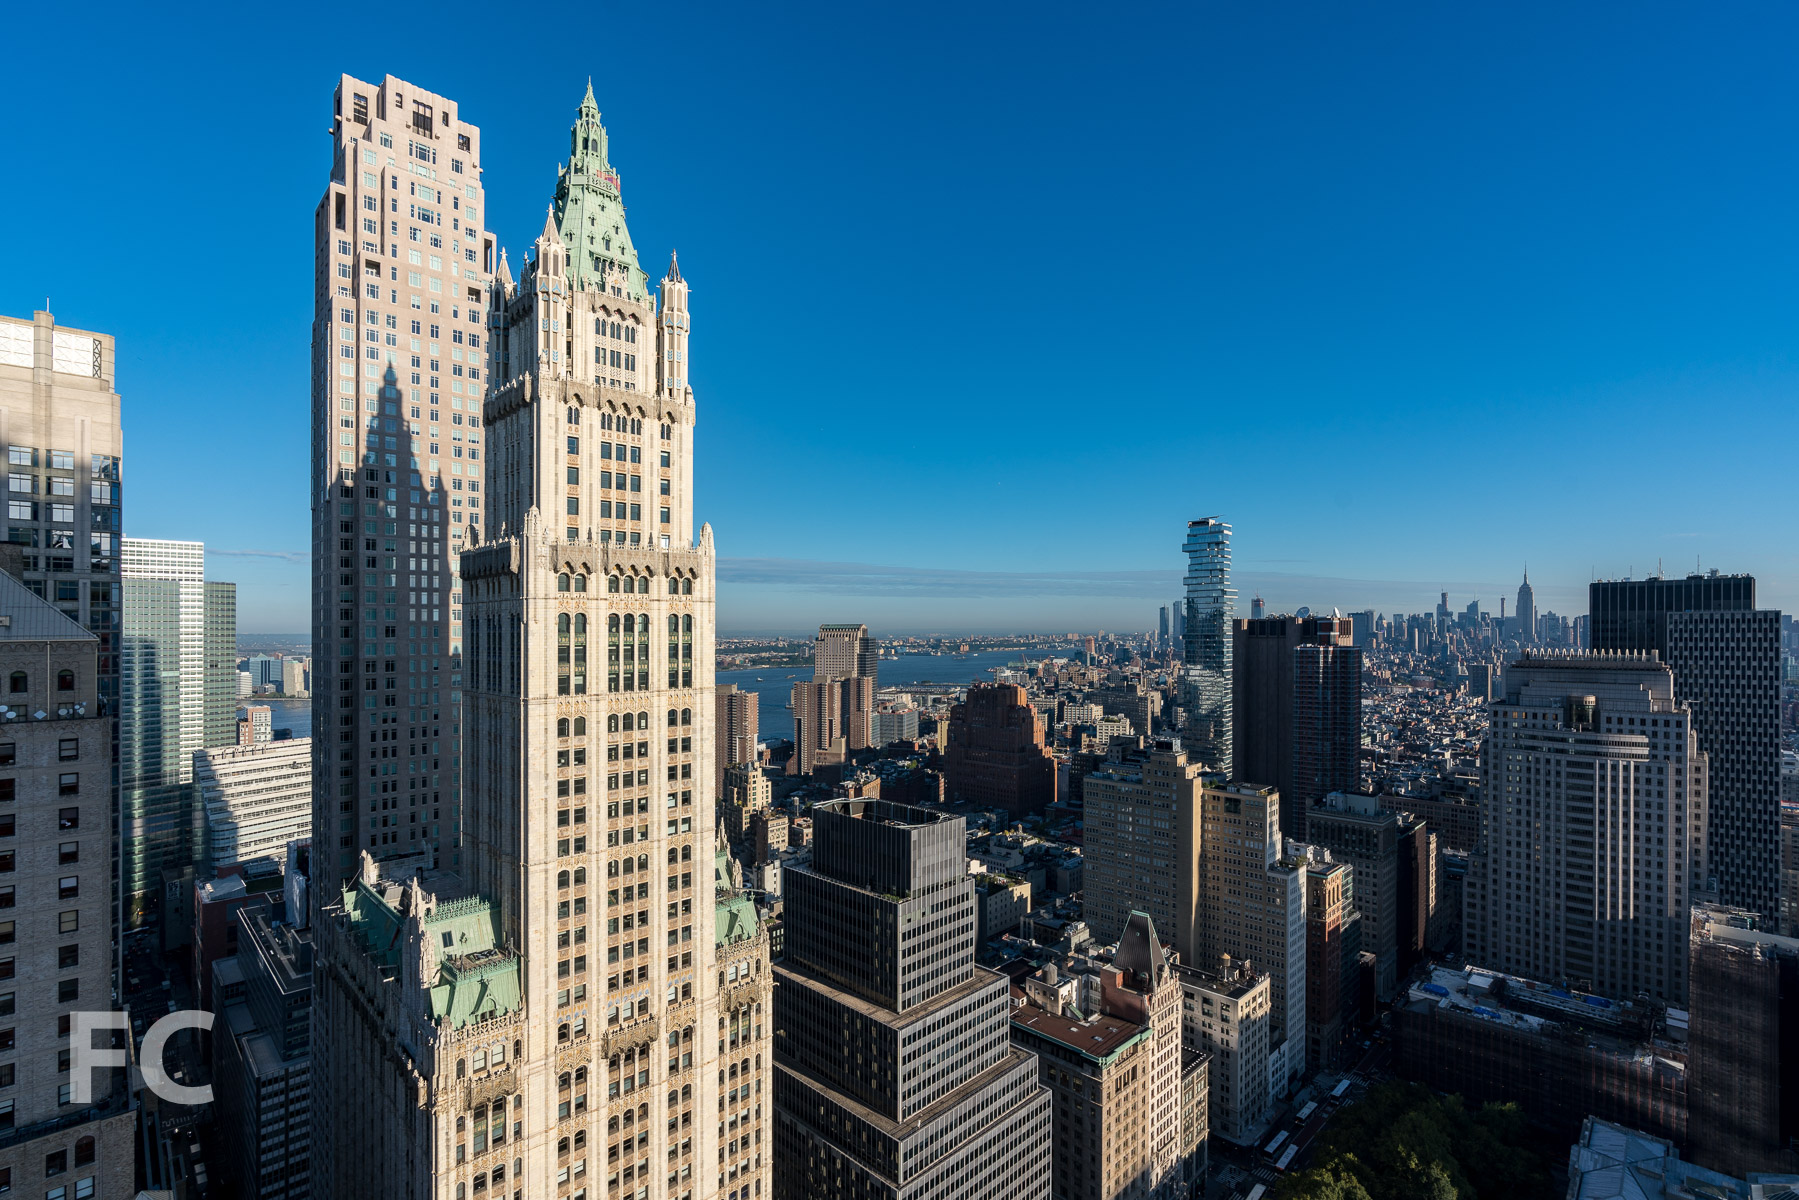 Looking northwest from the 41st floor towards the Woolworth Building.